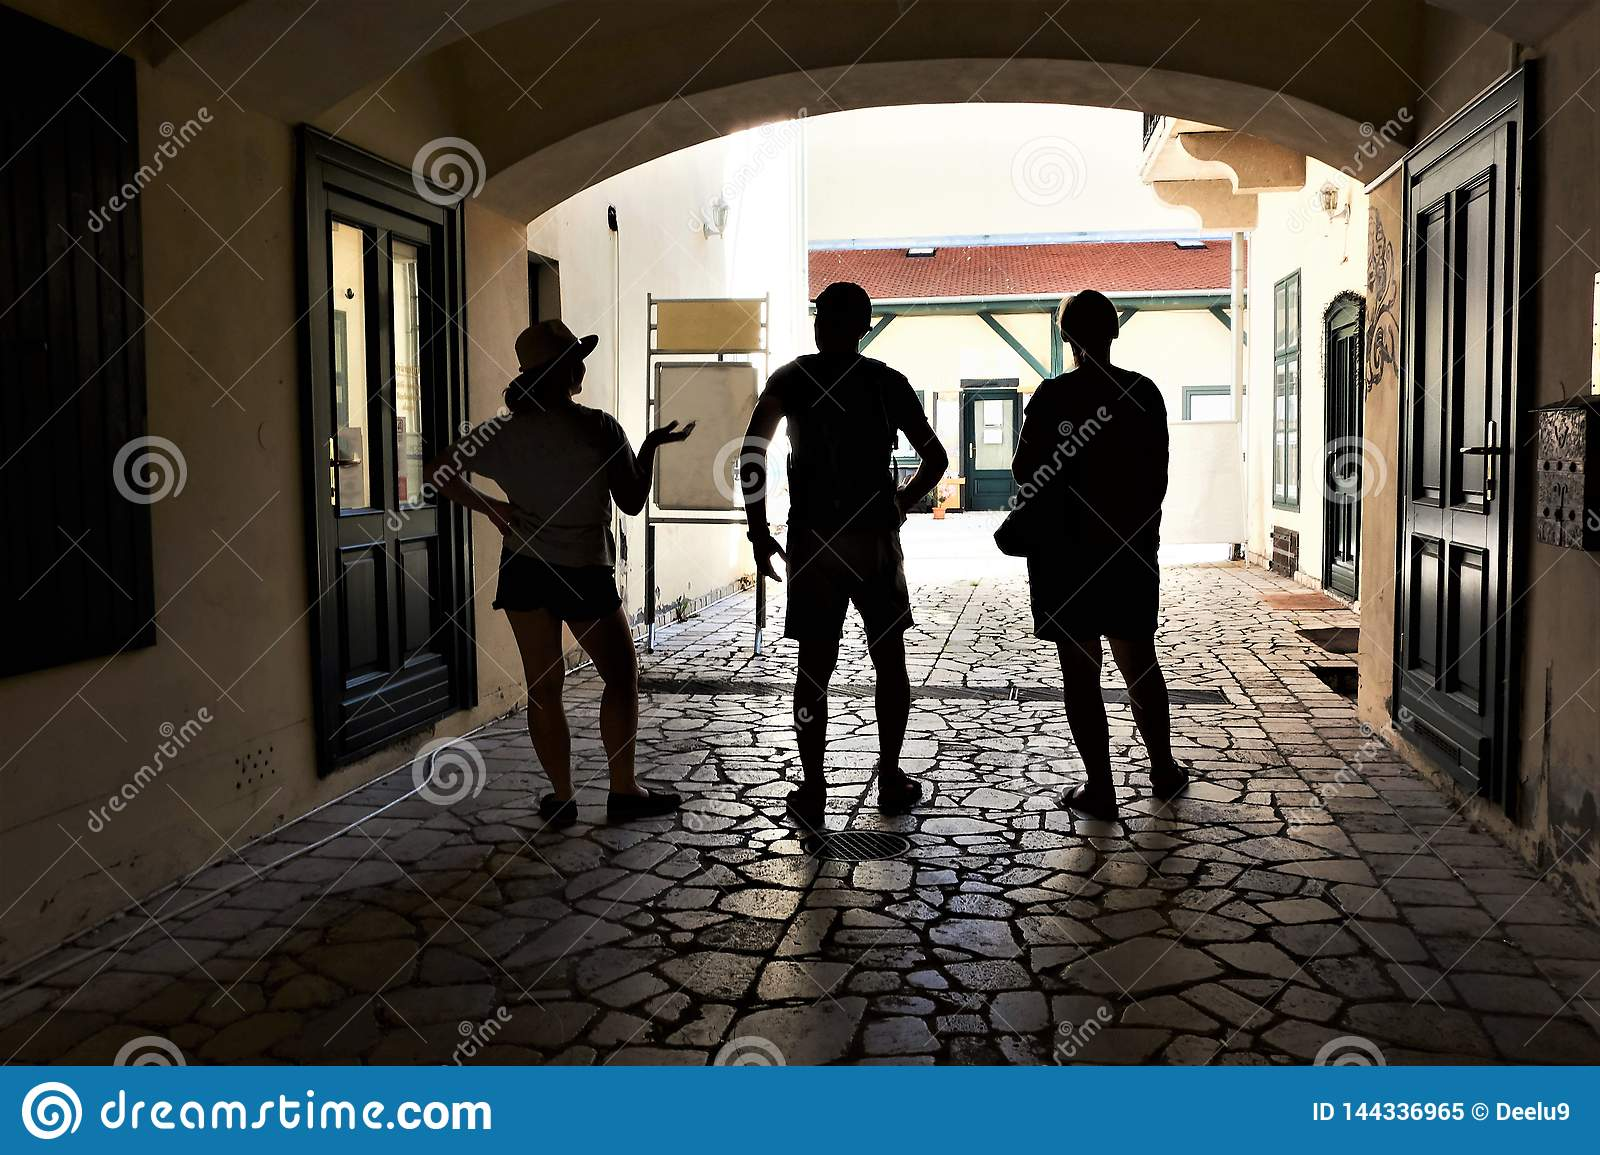 A family of three travelers seeking shade in an alleyway in a historic town of Eger, Hungary